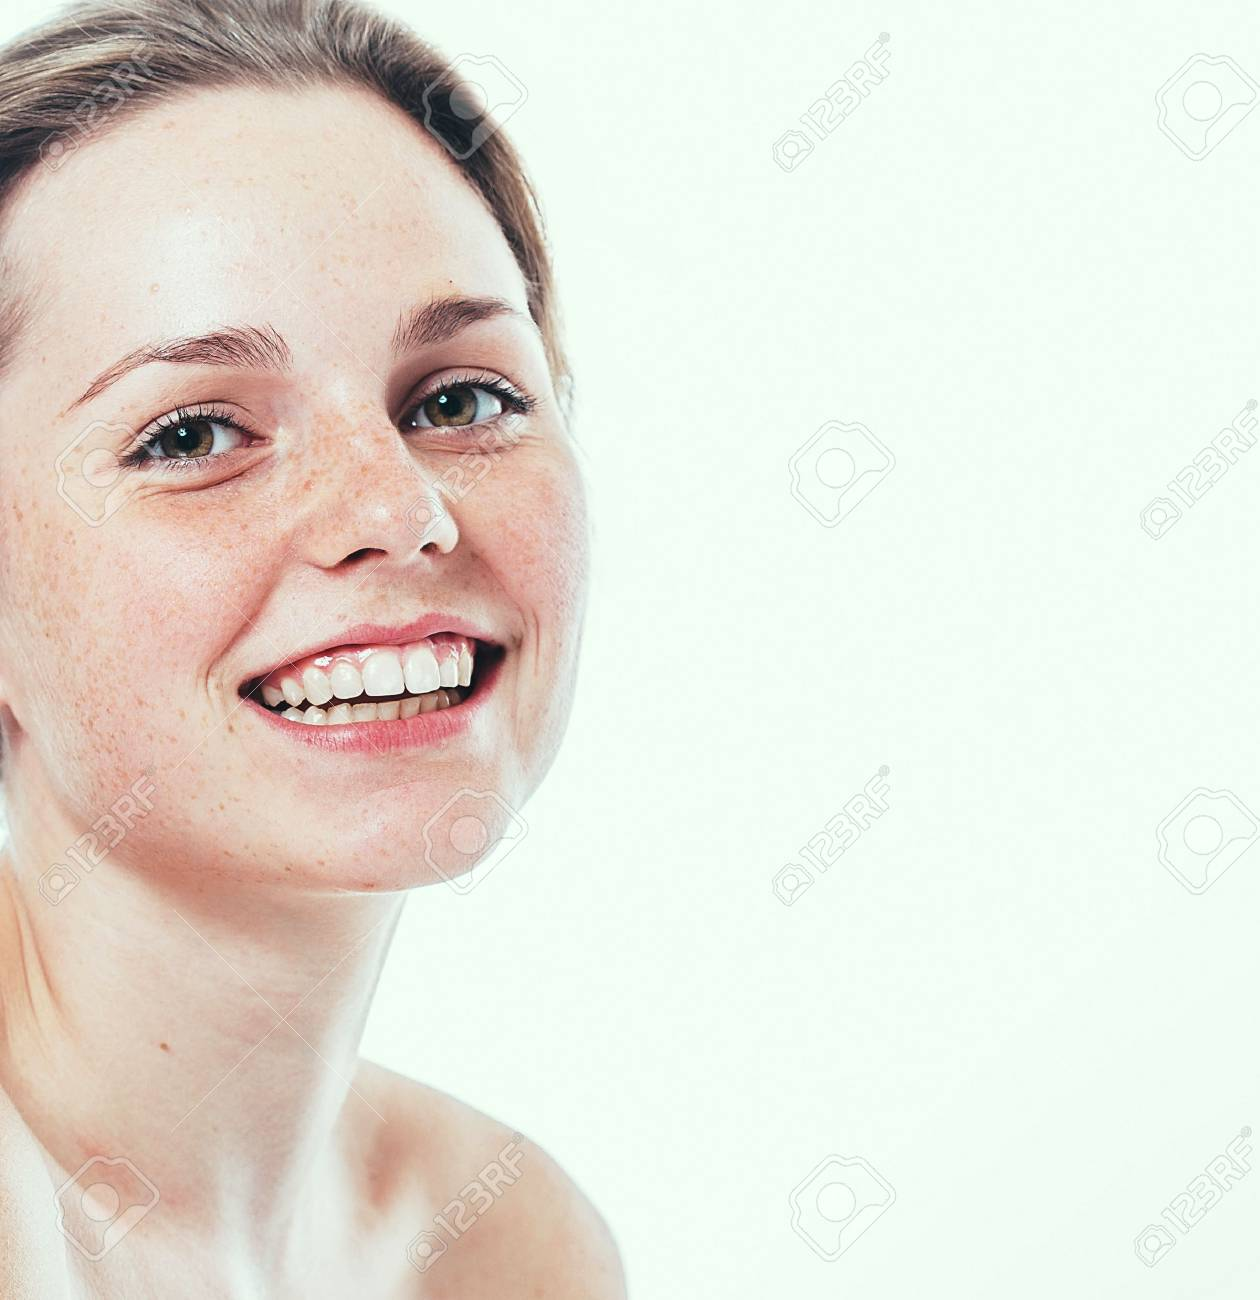 Portrait of smiling young and happy woman with freckles. Isolated on white. - 62771504